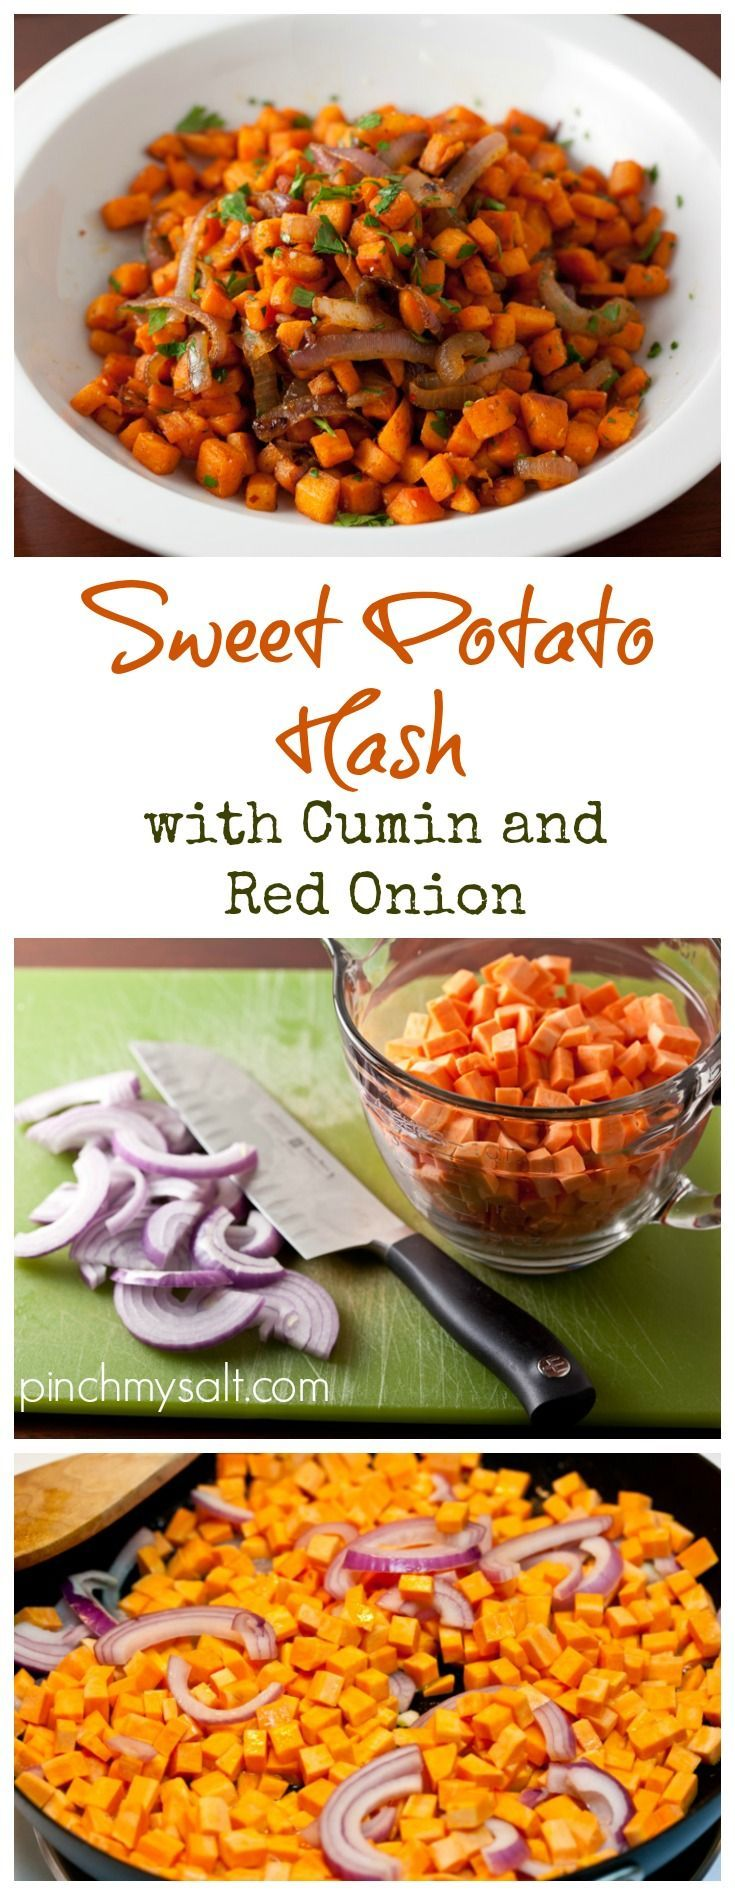 This simple and delicious Sweet Potato Hash recipe is healthy, perfect for paleo diet and Whole 30 challenge and is even vegetarian! It can be eaten for breakfast with fried eggs and bacon or even as